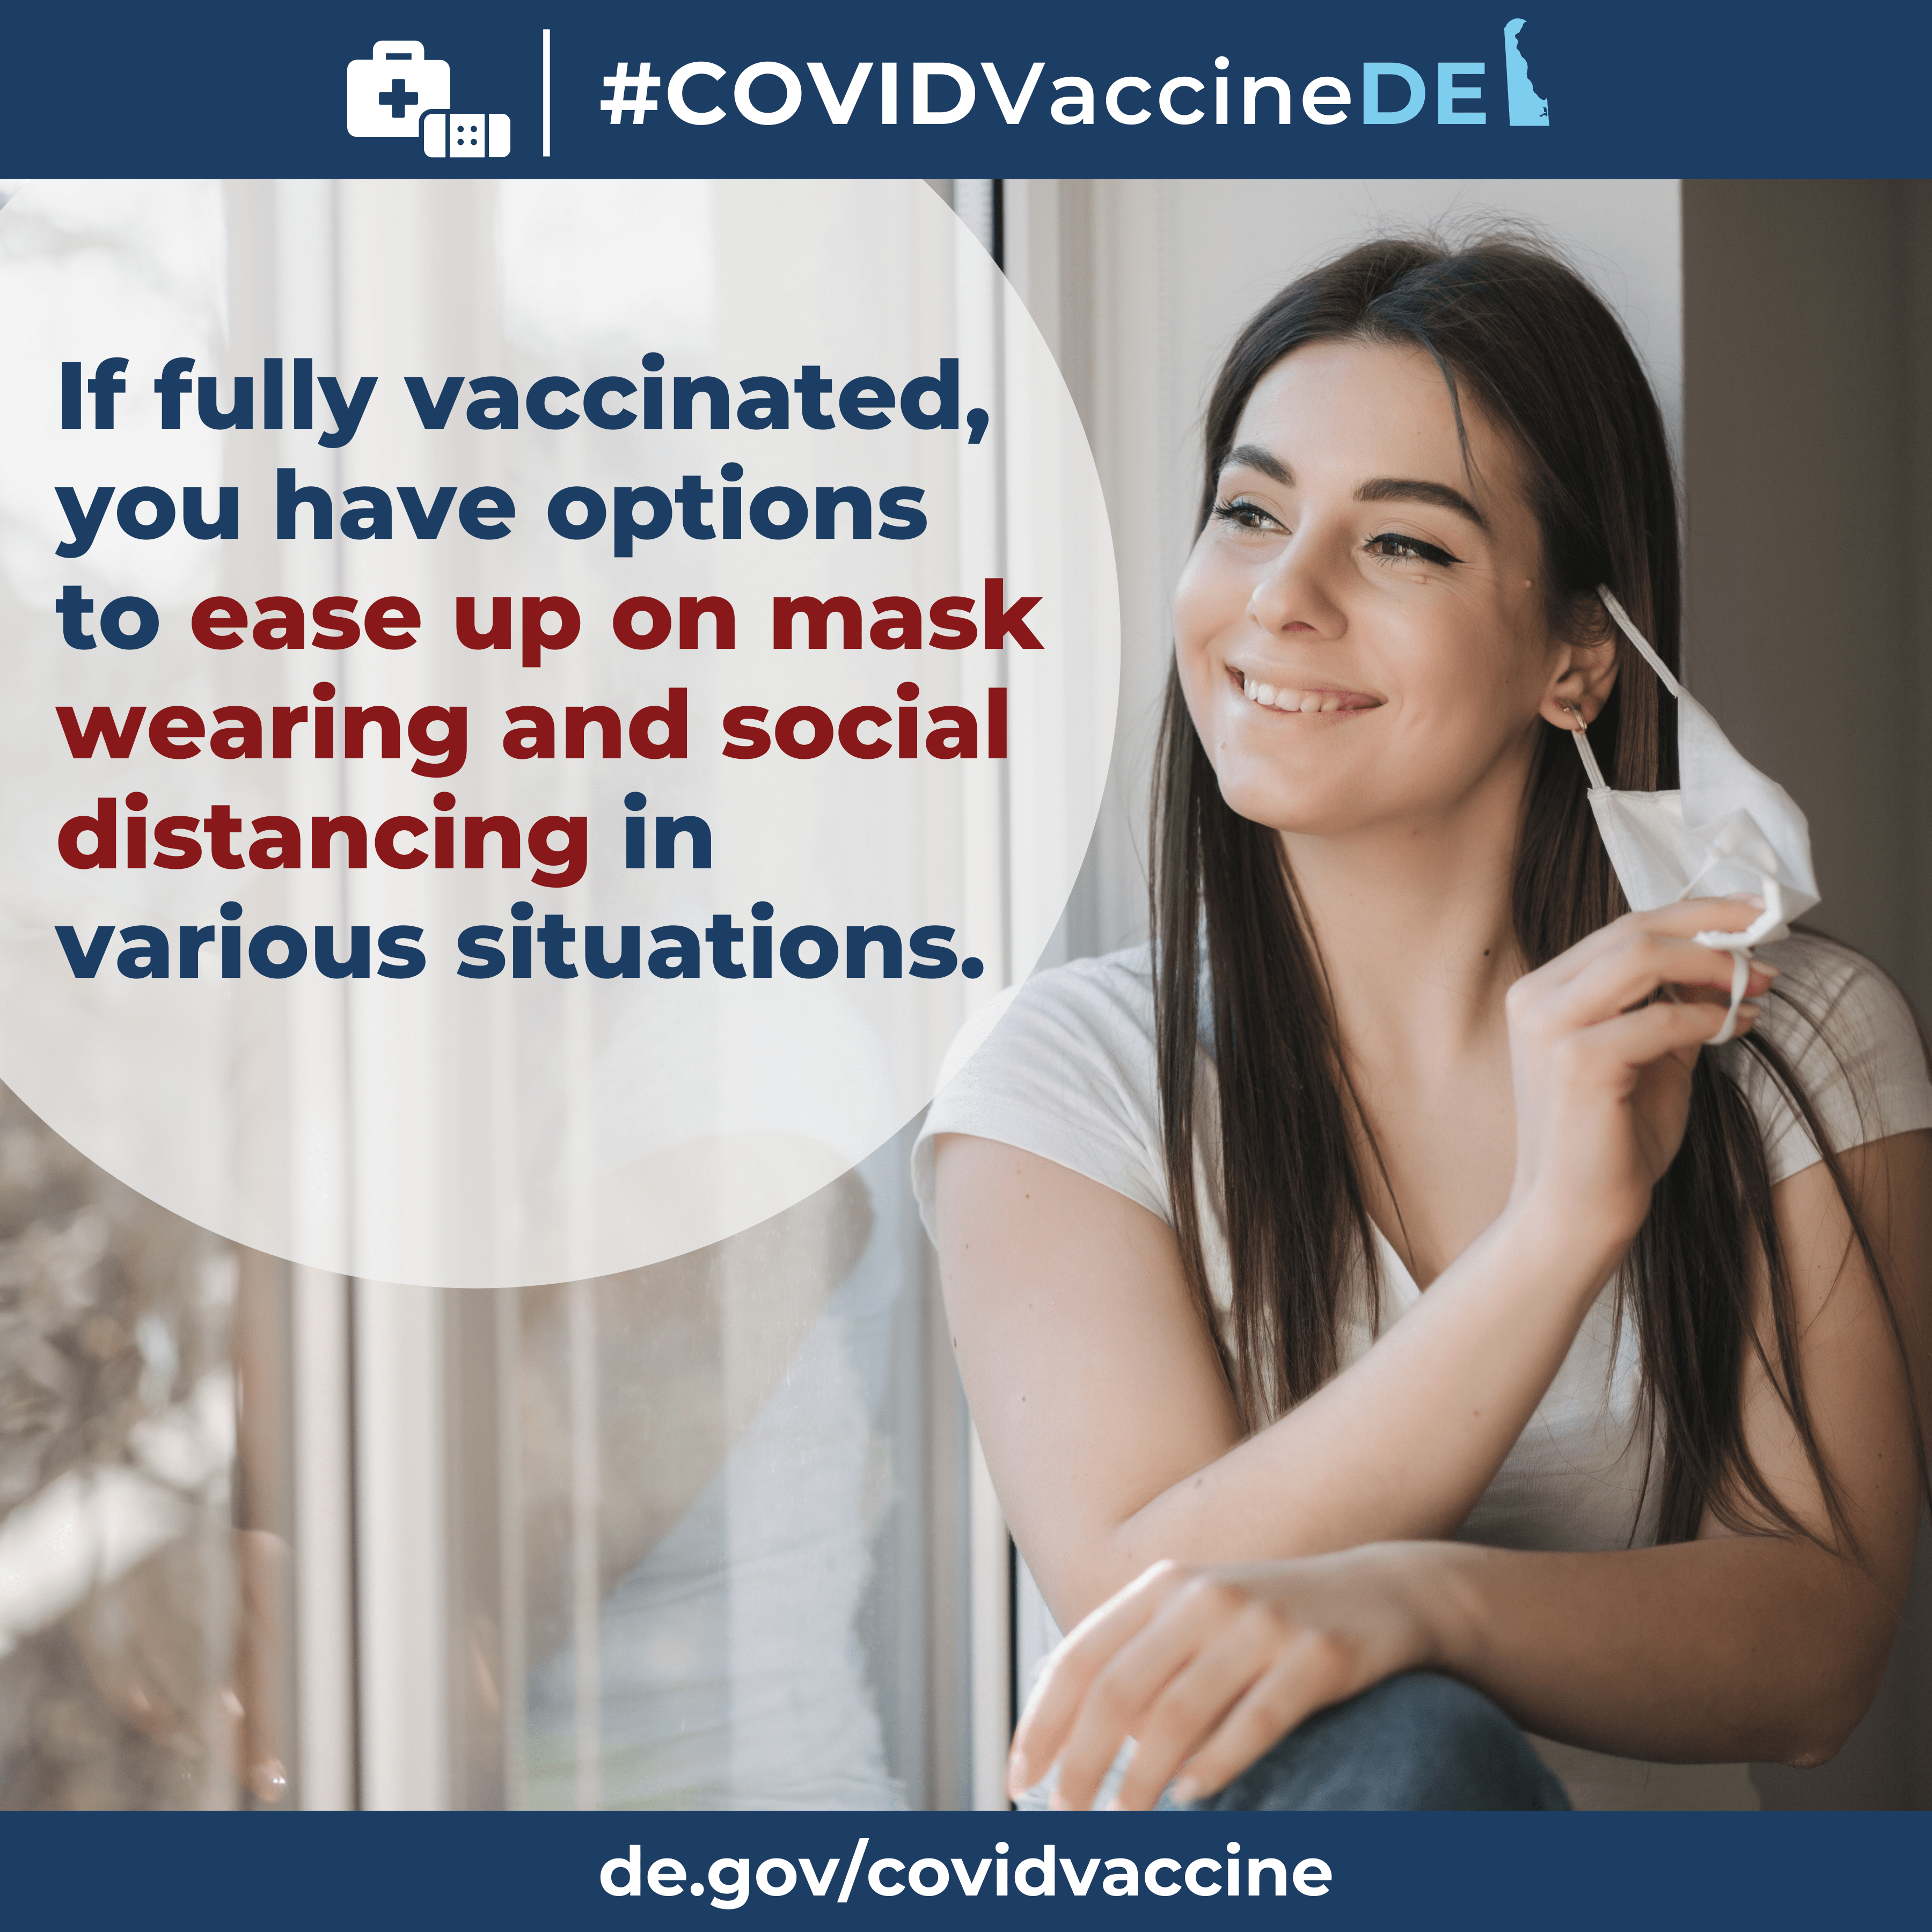 """A woman smiling while pulling off her mask indoors. The graphic elements read: """"If fully vaccinated, you have options to ease up on mask wearing and social distancing in various sitations."""" Visit de.gov/coronavirus for more information."""